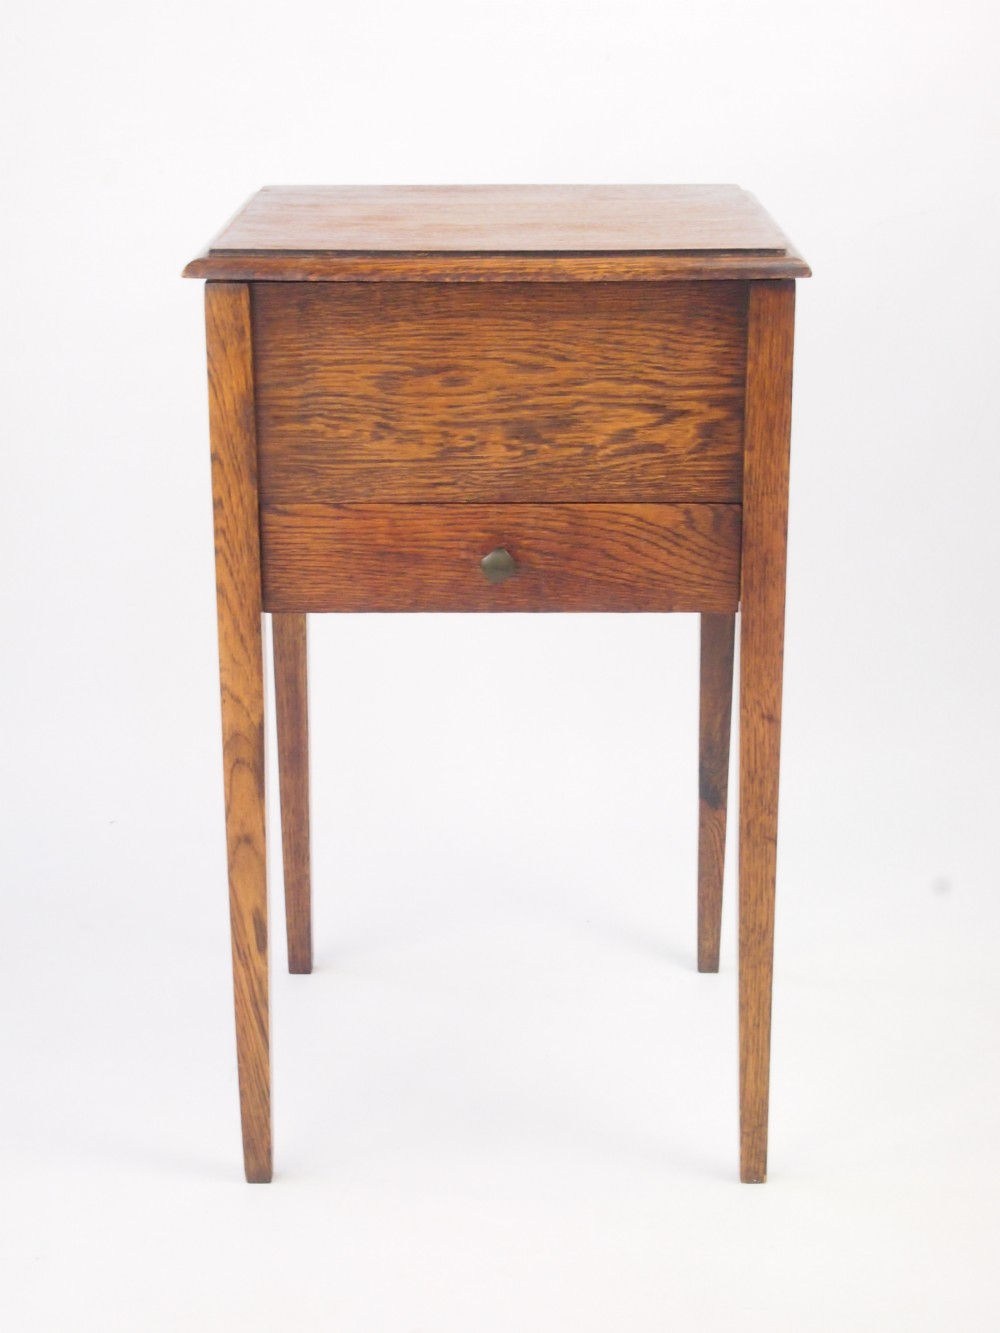 Specialists antique snooker billiards tables hand made cues